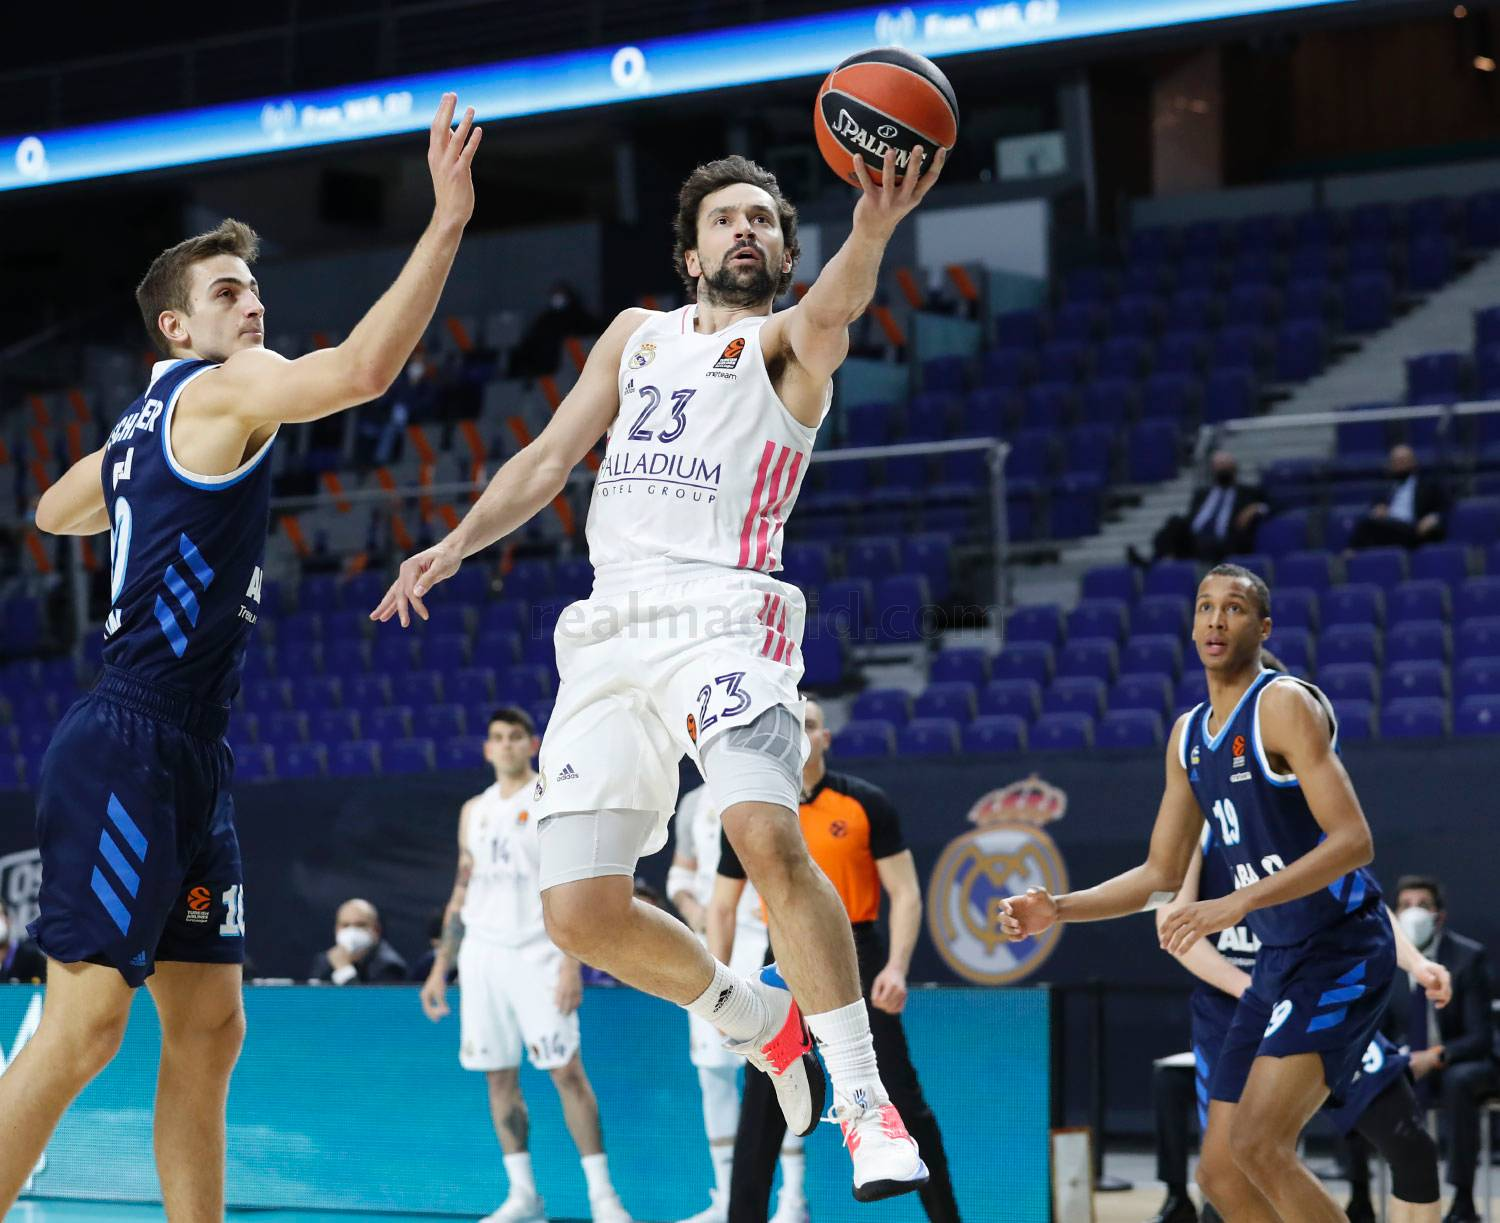 Real Madrid overwhelms Albar Berlin